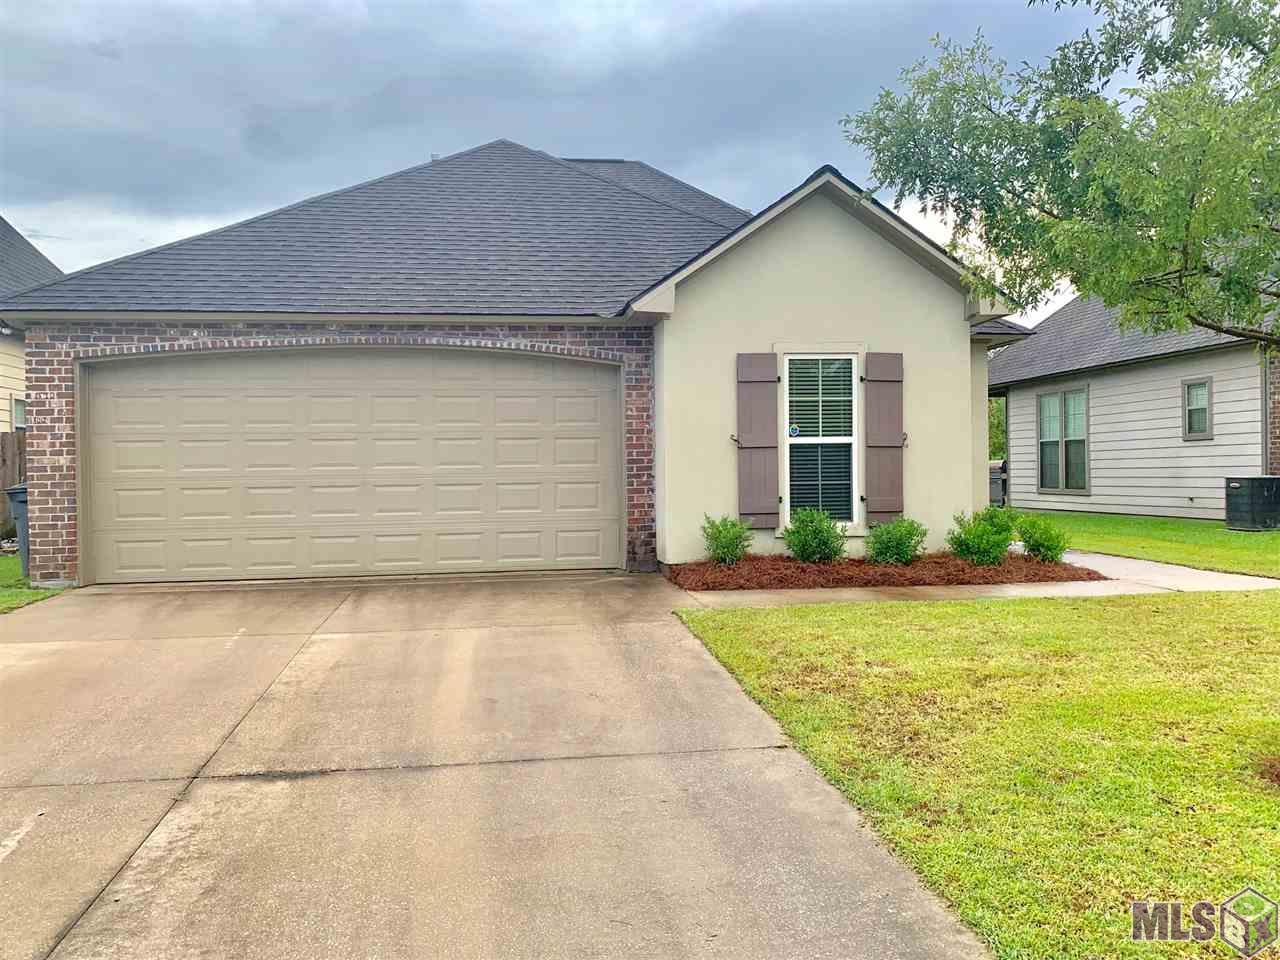 14940 WAX MYRTLE AVE, Baton Rouge, LA 70817